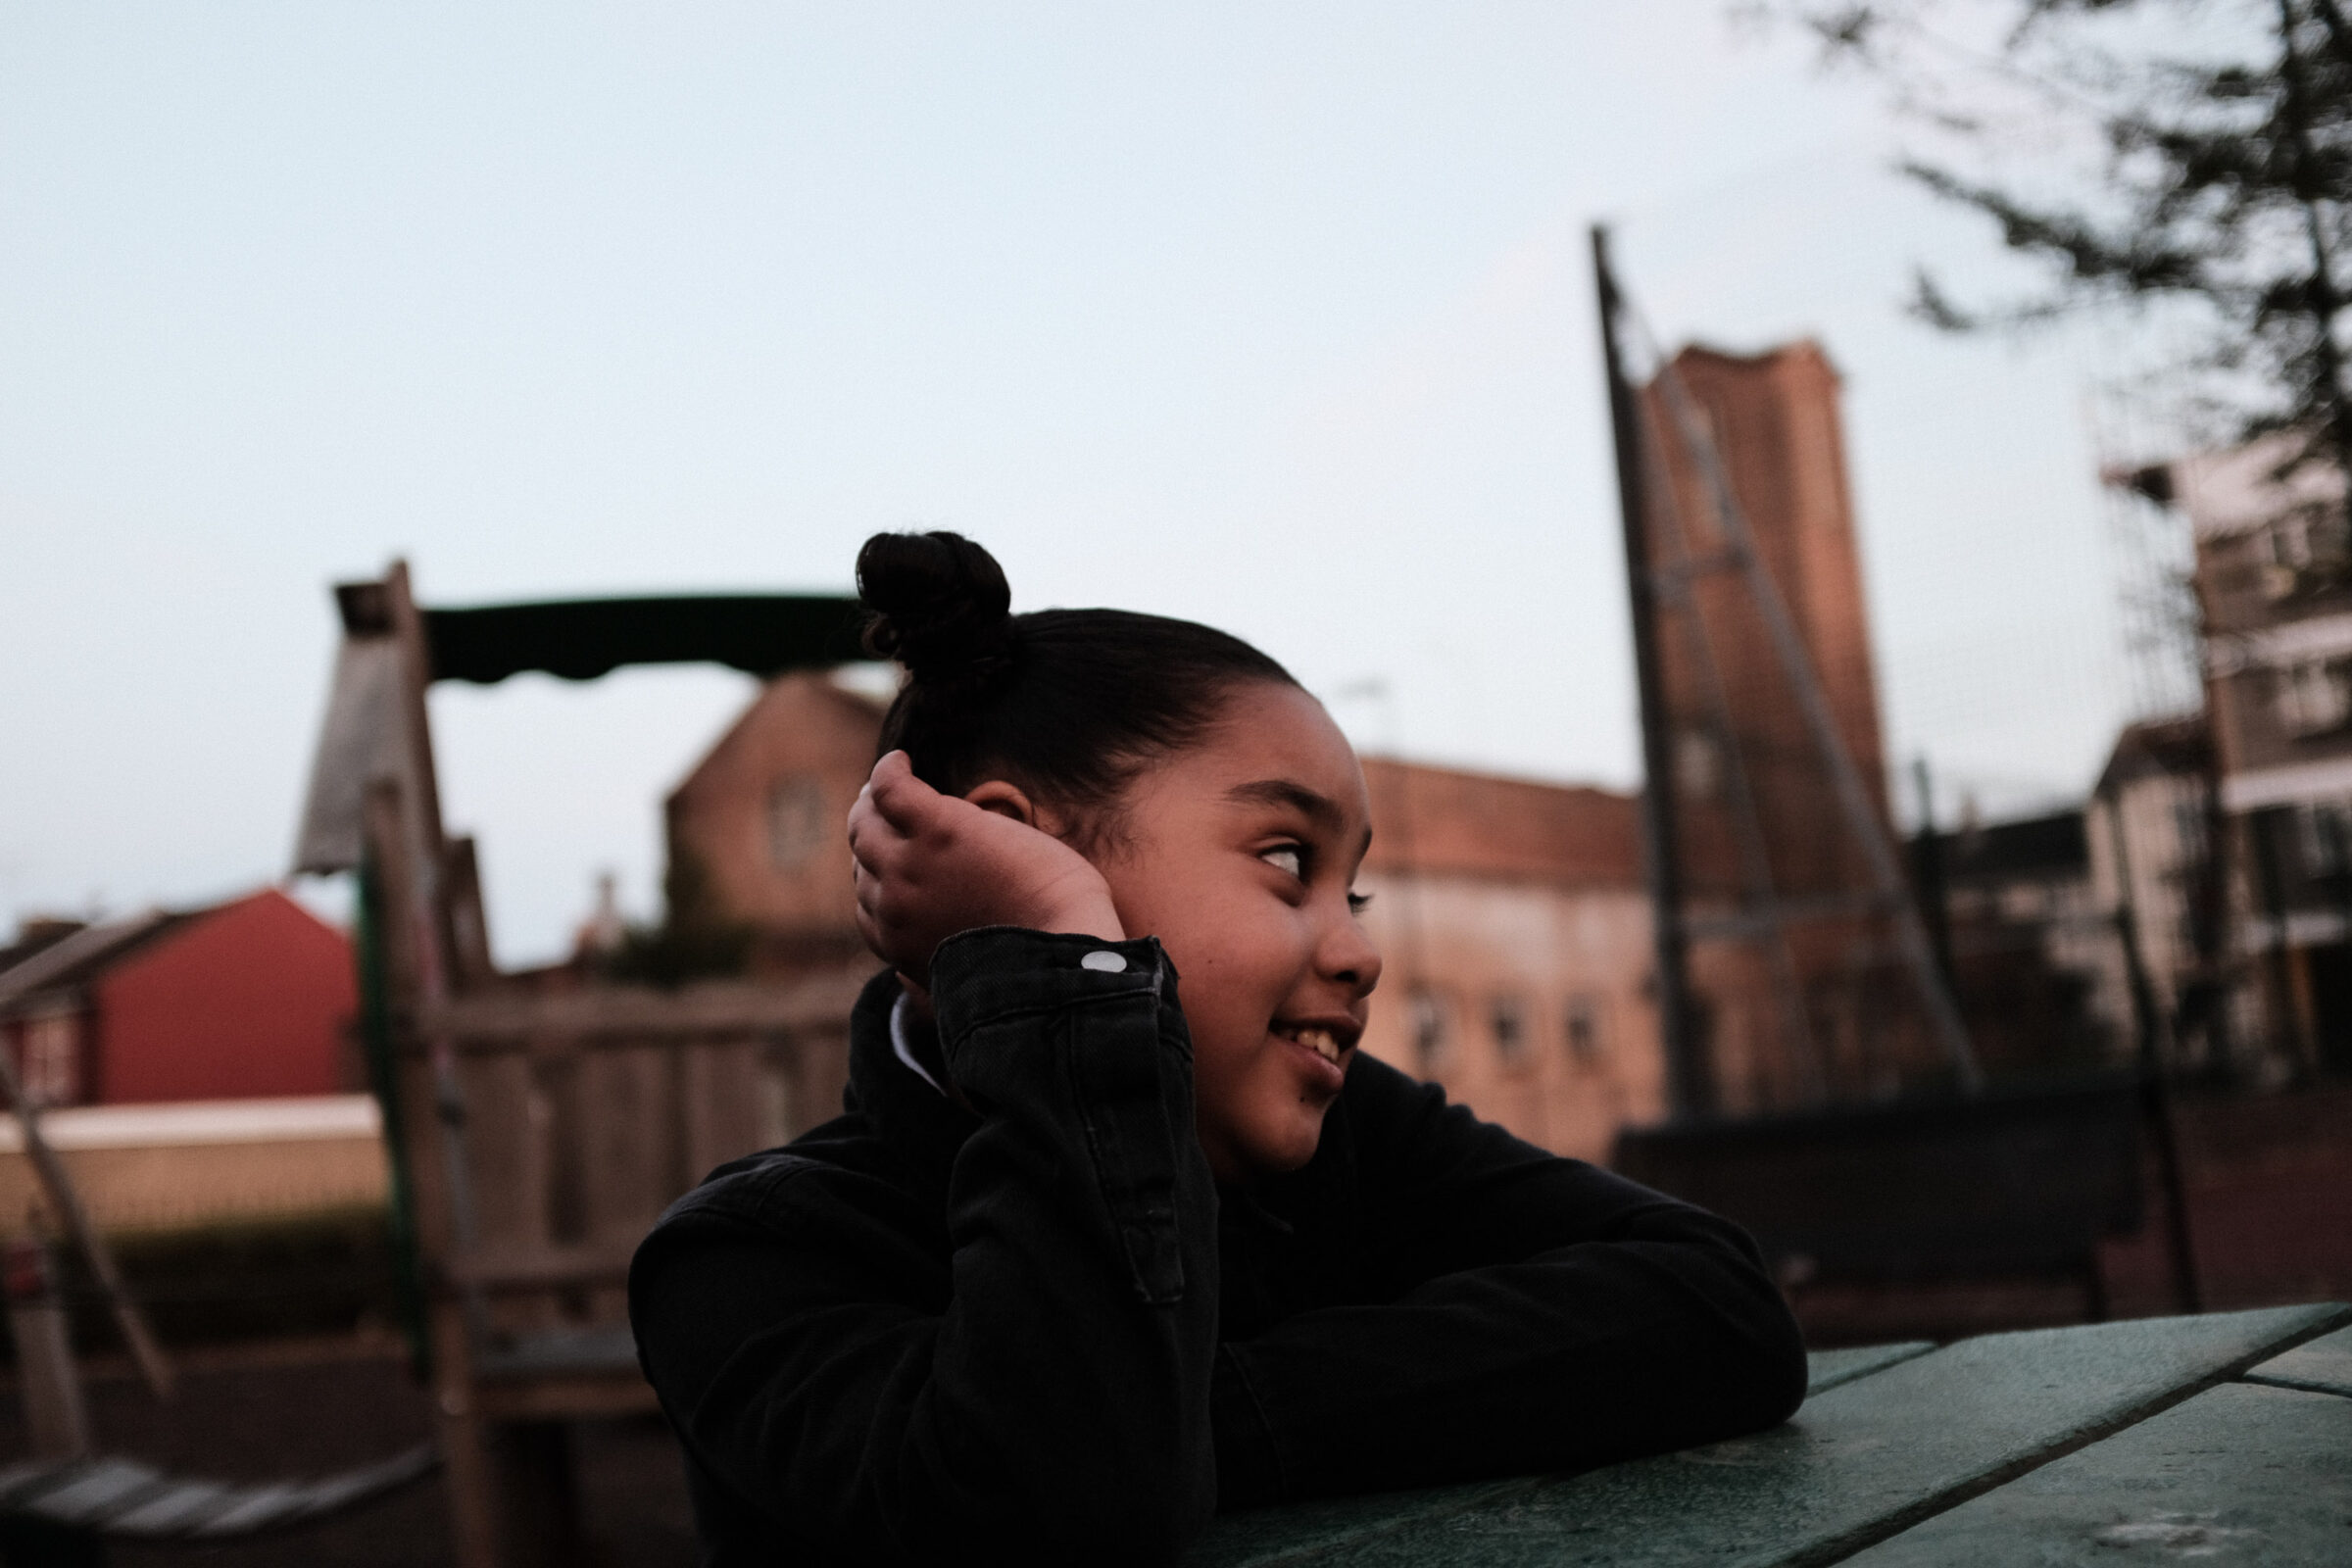 A girl poses for a picture while leaning on a picnic table and looking towards the right